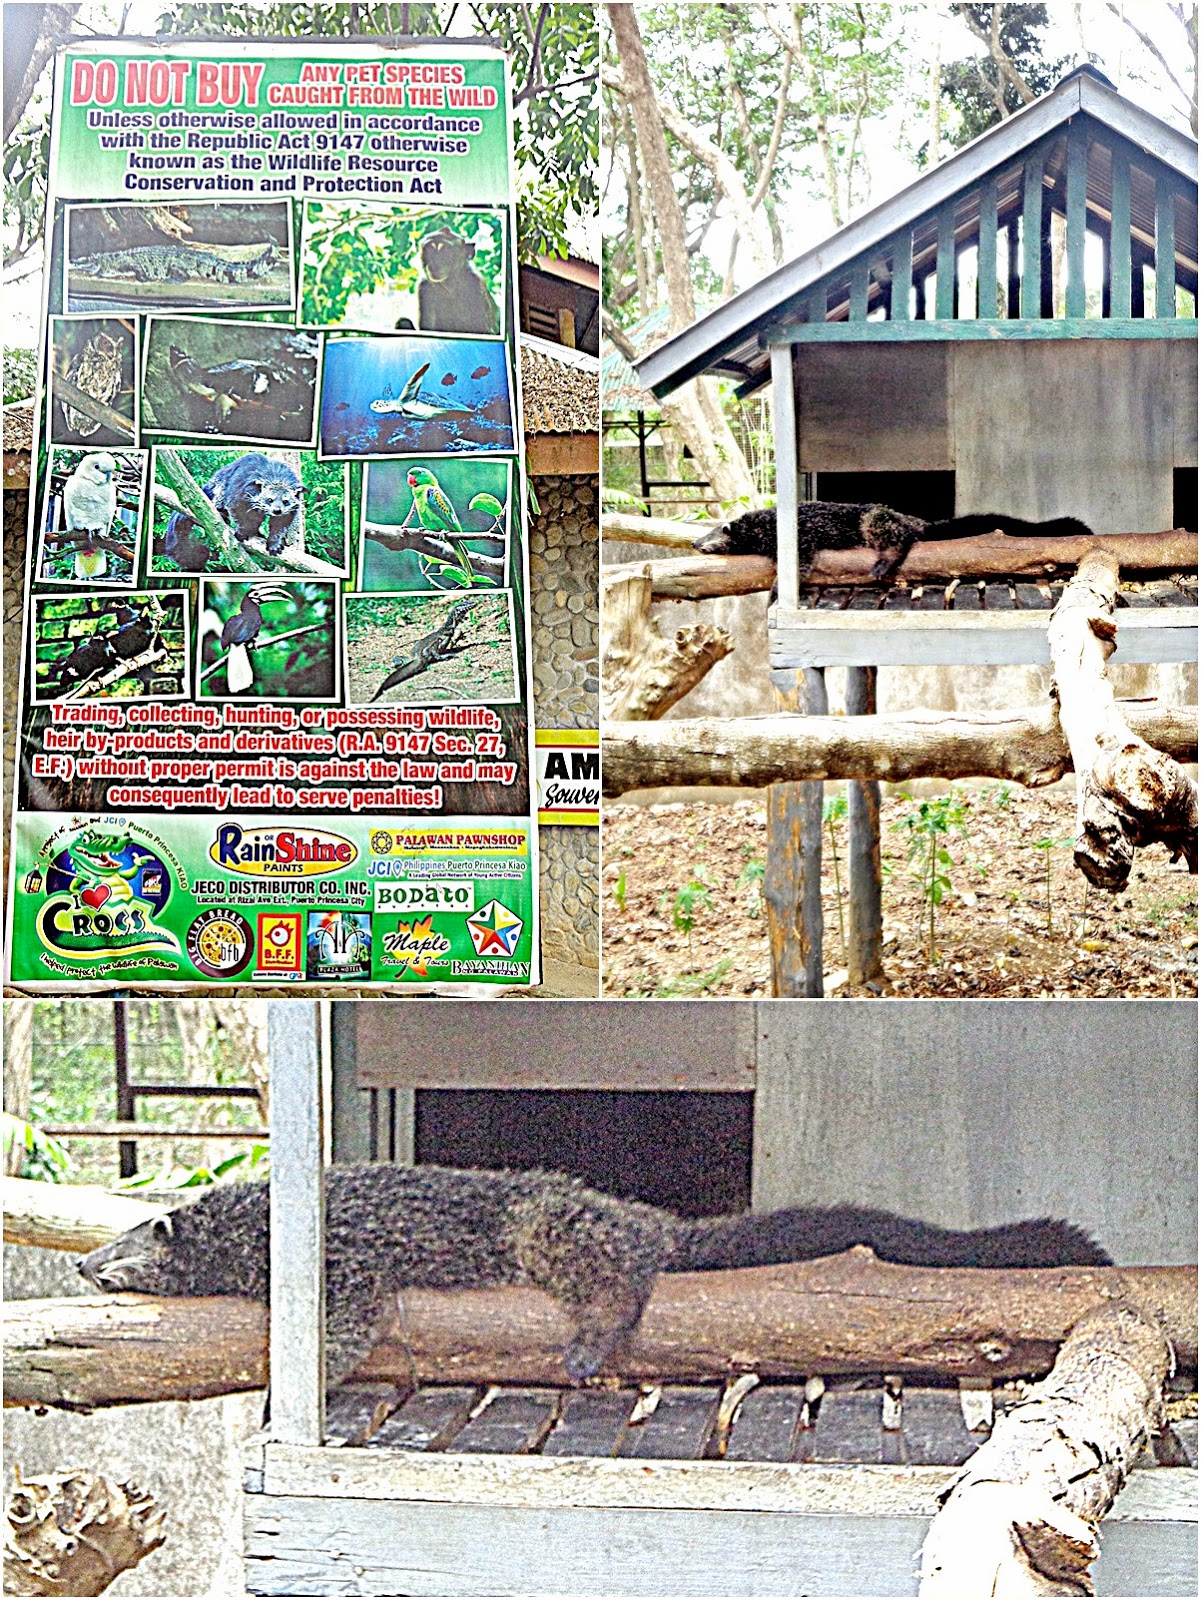 palawan crocodile farm, palawan wildlife rescue and conservation center